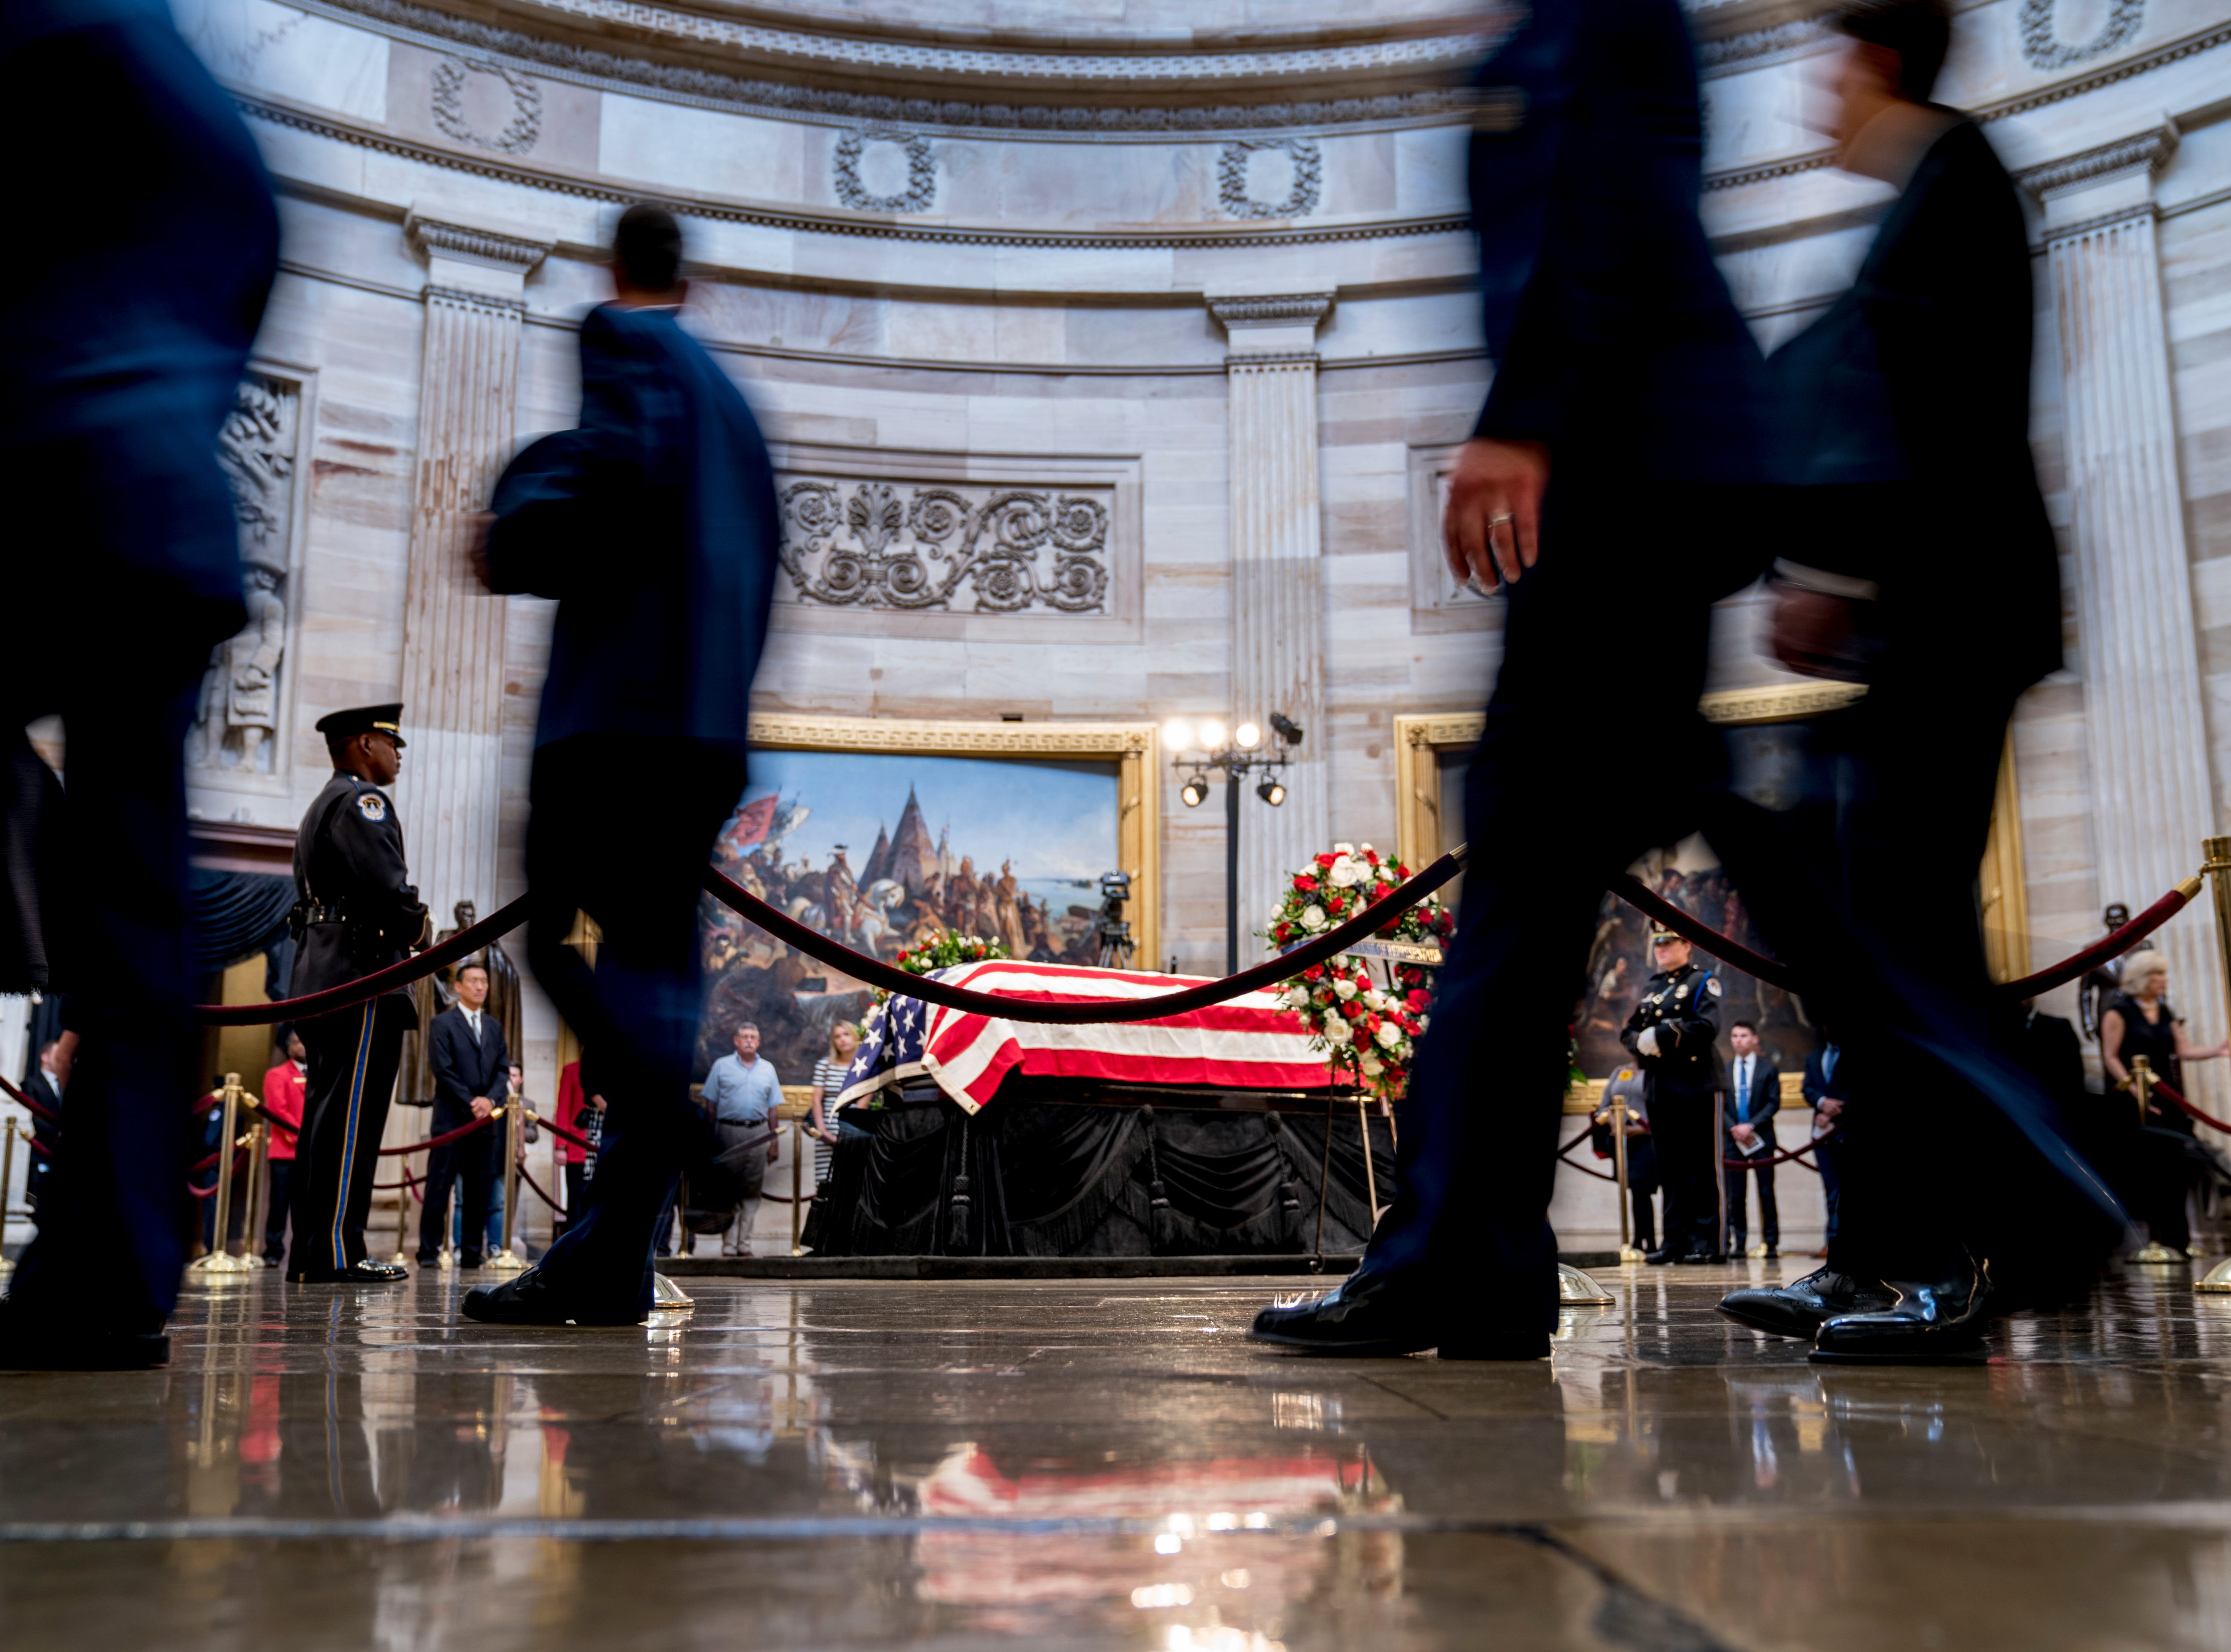 Members of the public file through the U.S. Capitol Rotunda as pay their respects to Sen. John McCain, R-Ariz., as he lies in state Friday, Aug. 31, 2018, in Washington. (AP Photo/Andrew Harnik)